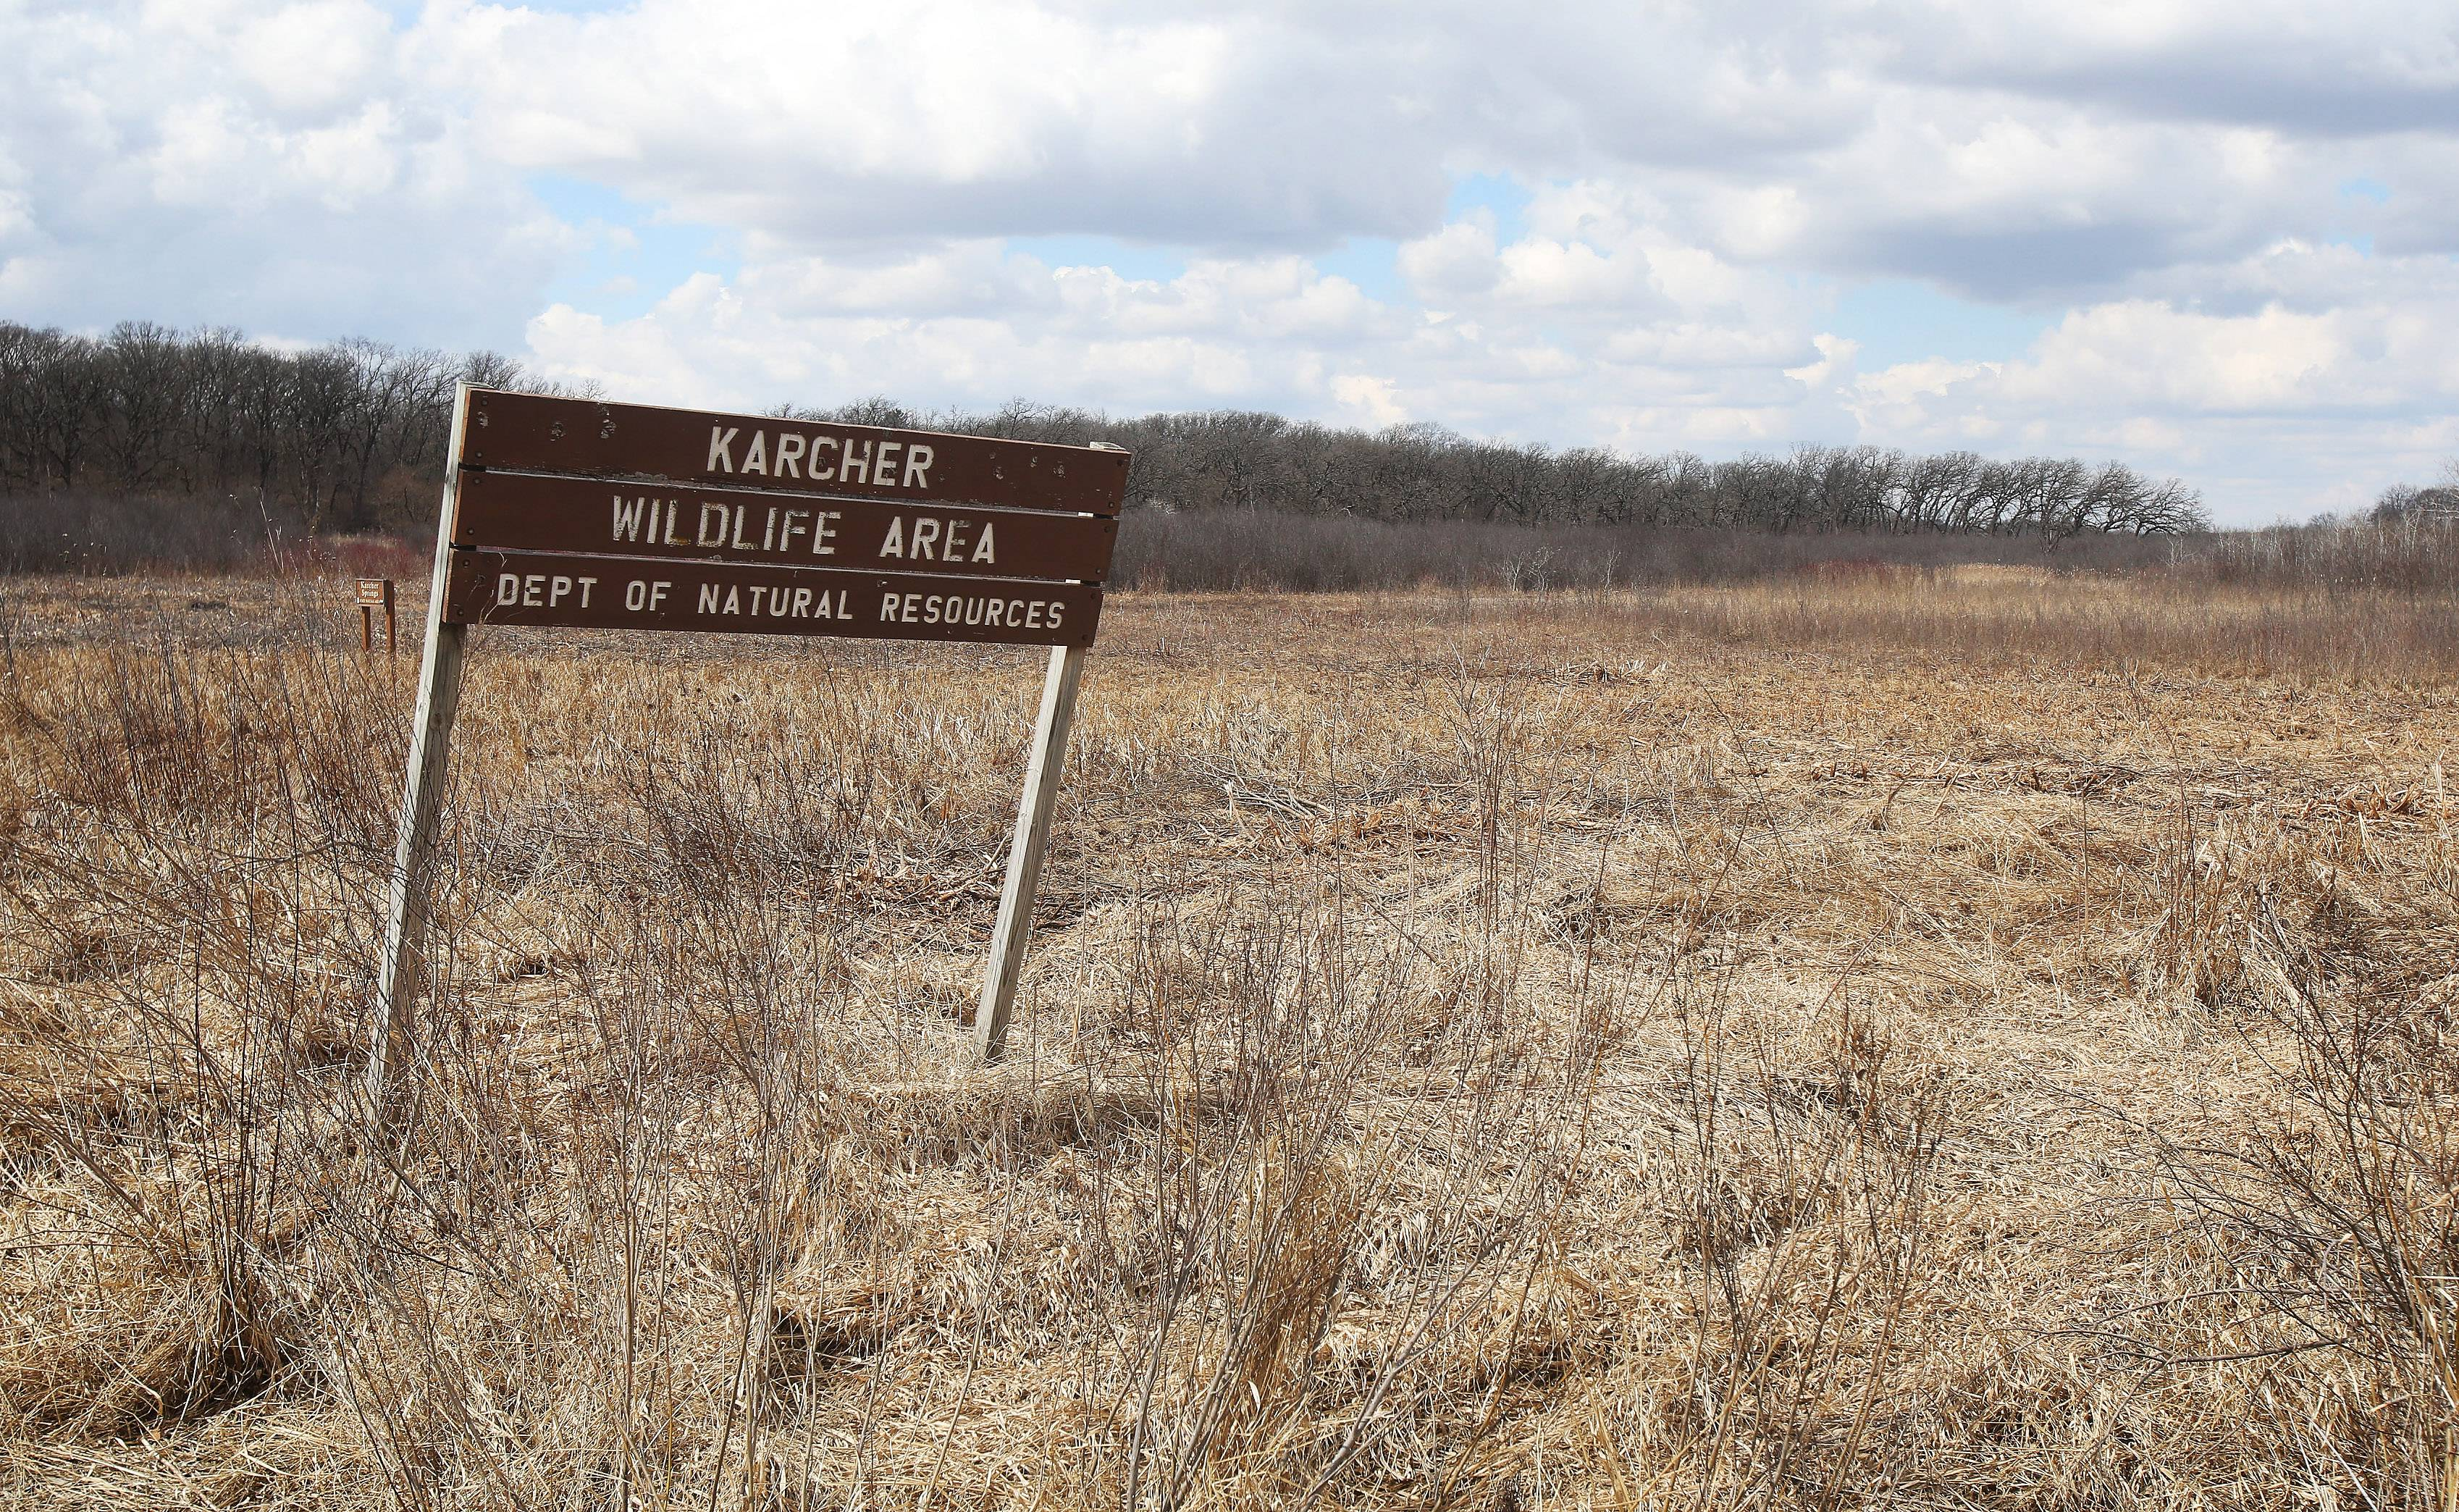 Amber Creek's body was found in the Karcher Wildlife Area in Burlington, Wis. Authorities say a Palatine man beat and suffocated the 14-year-old girl to death, then left her in the wooded area.